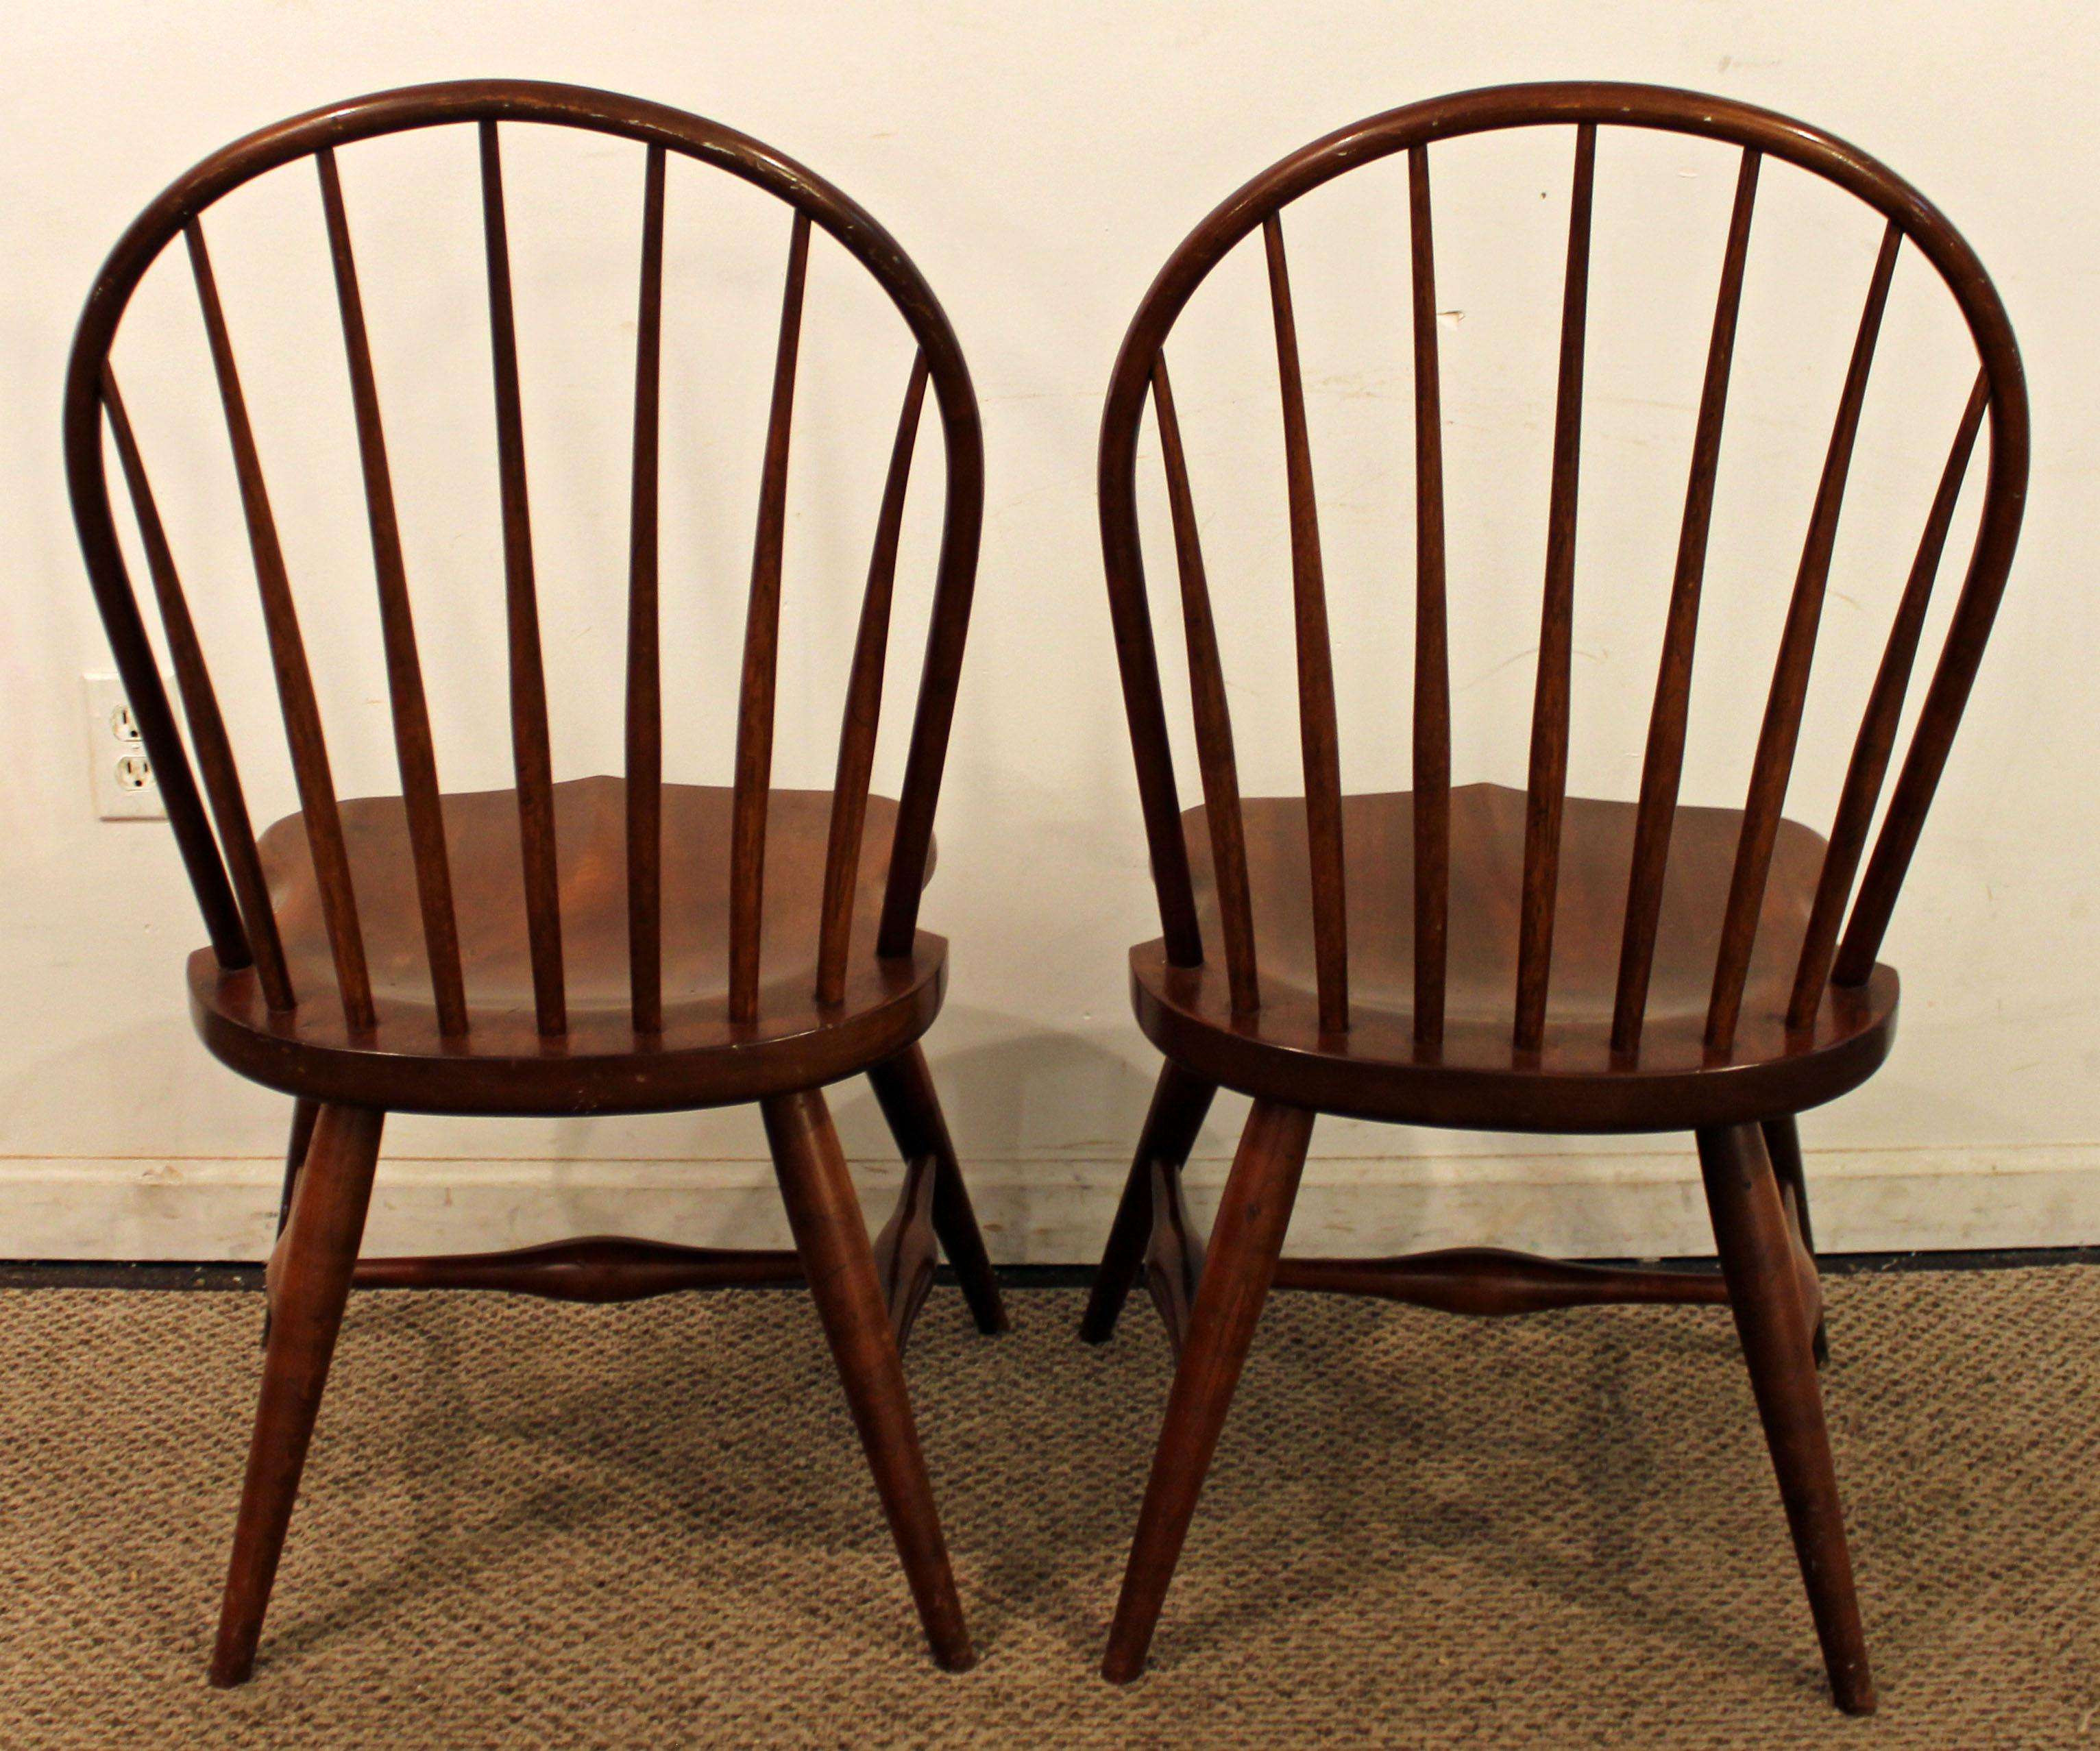 Exceptional Duckloe Bros Cherry Hoop Back Windsor Side Chairs   A Pair   Image 5 Of